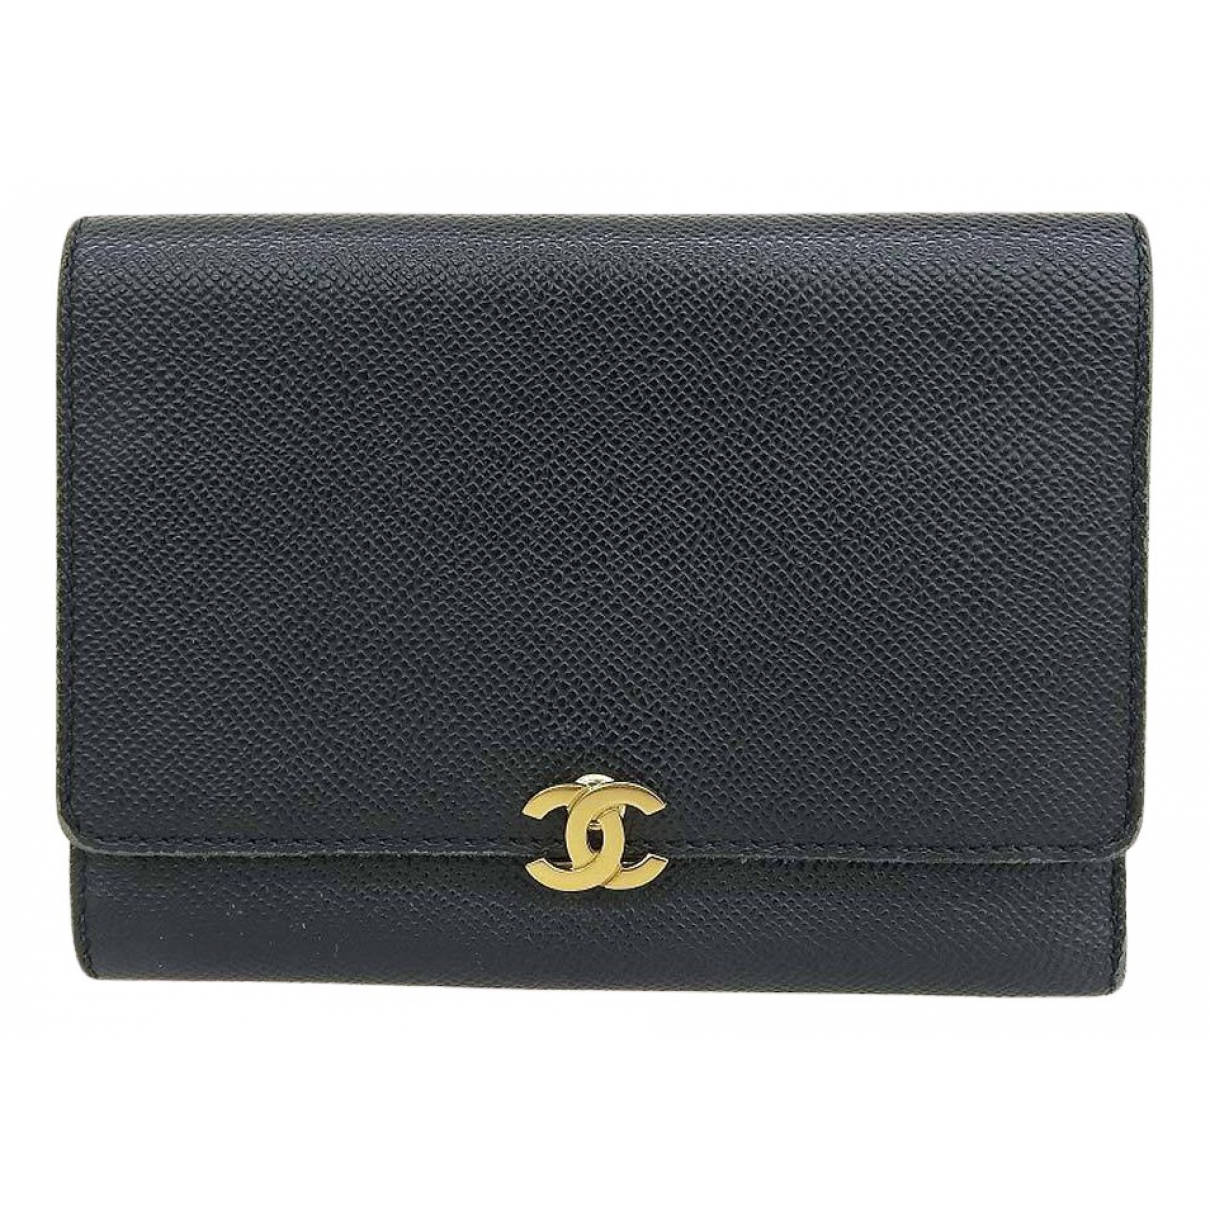 Chanel N Black Leather wallet for Women N